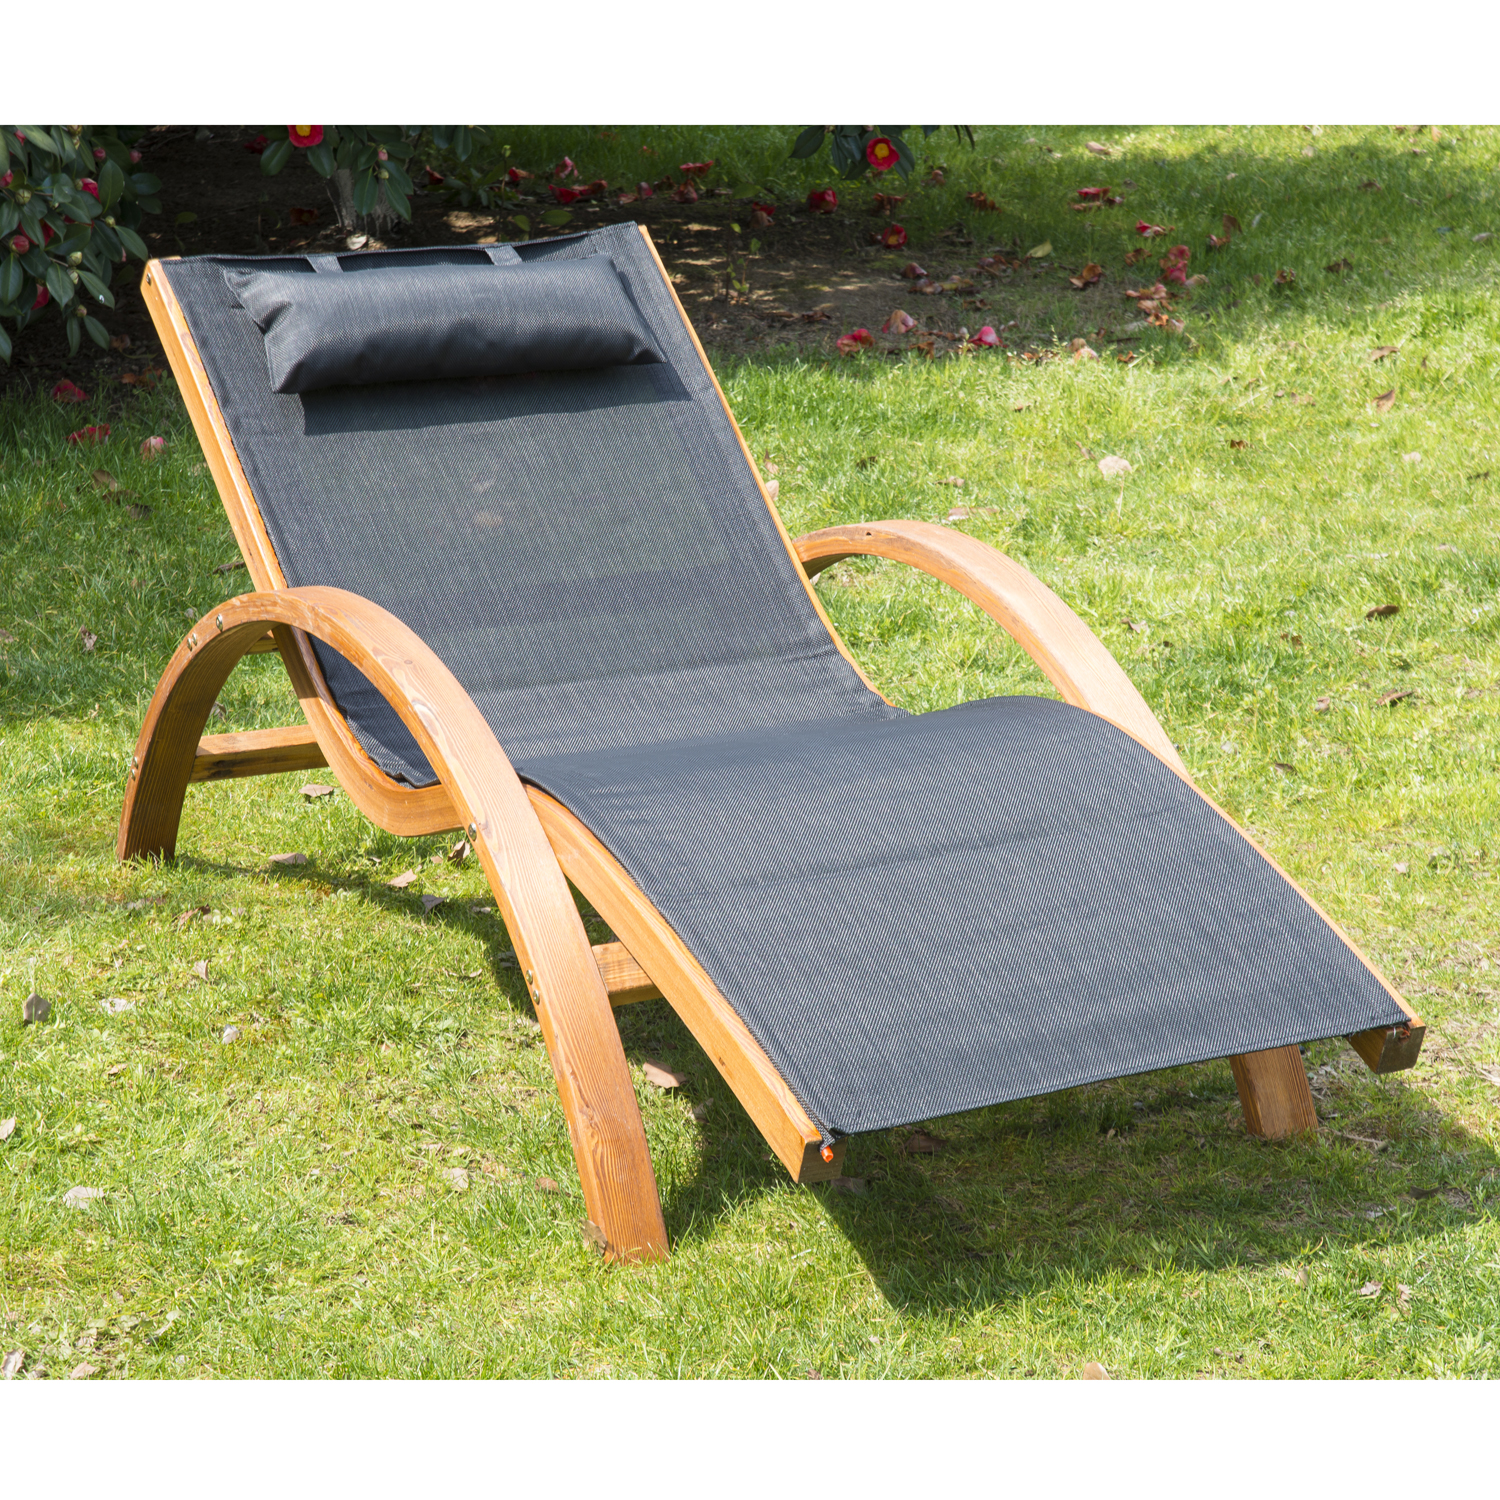 Pool Lounge Chair Details About Outdoor Reclining Chaise Lounge Chair Pool Lawn Lounger Beach Sun Patio